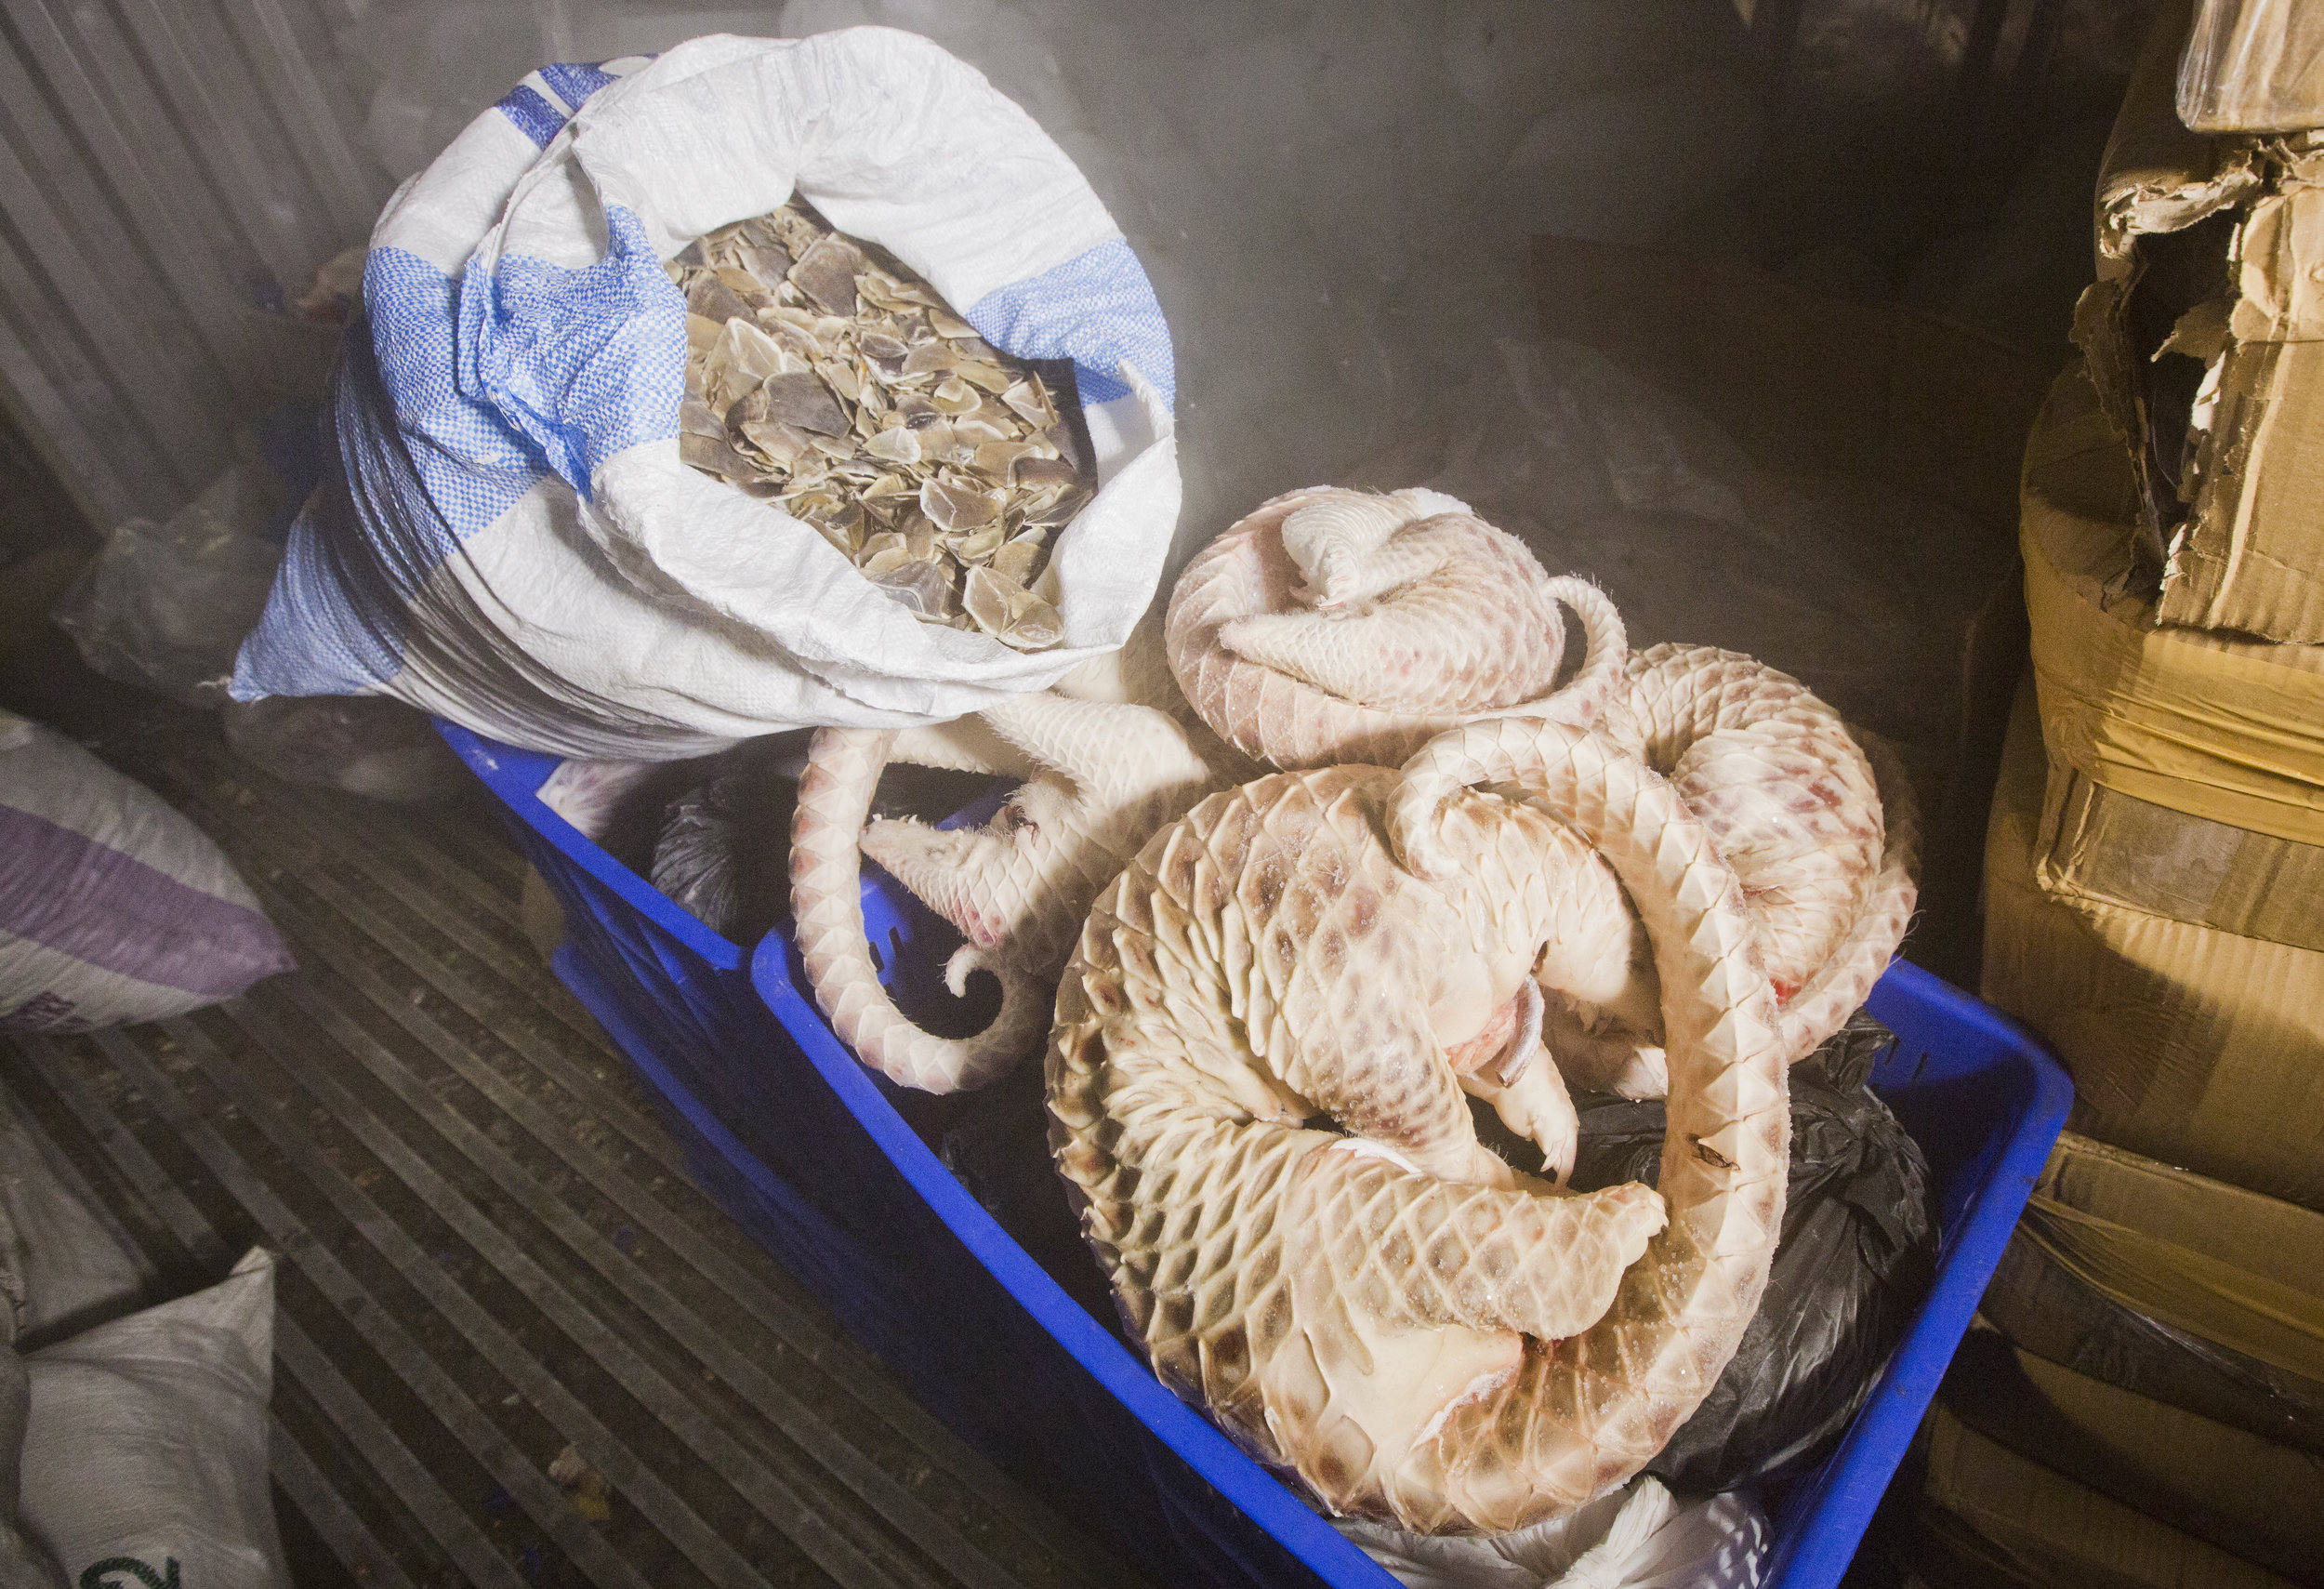 conservation - All eight species of pangolins are threatened with extinction. More than 1 million pangolins have been trafficked in the last decade. Their scales are used in traditional Asian medicines and their meat is considered a luxury food throughout Asia. Learn about our work to save them.